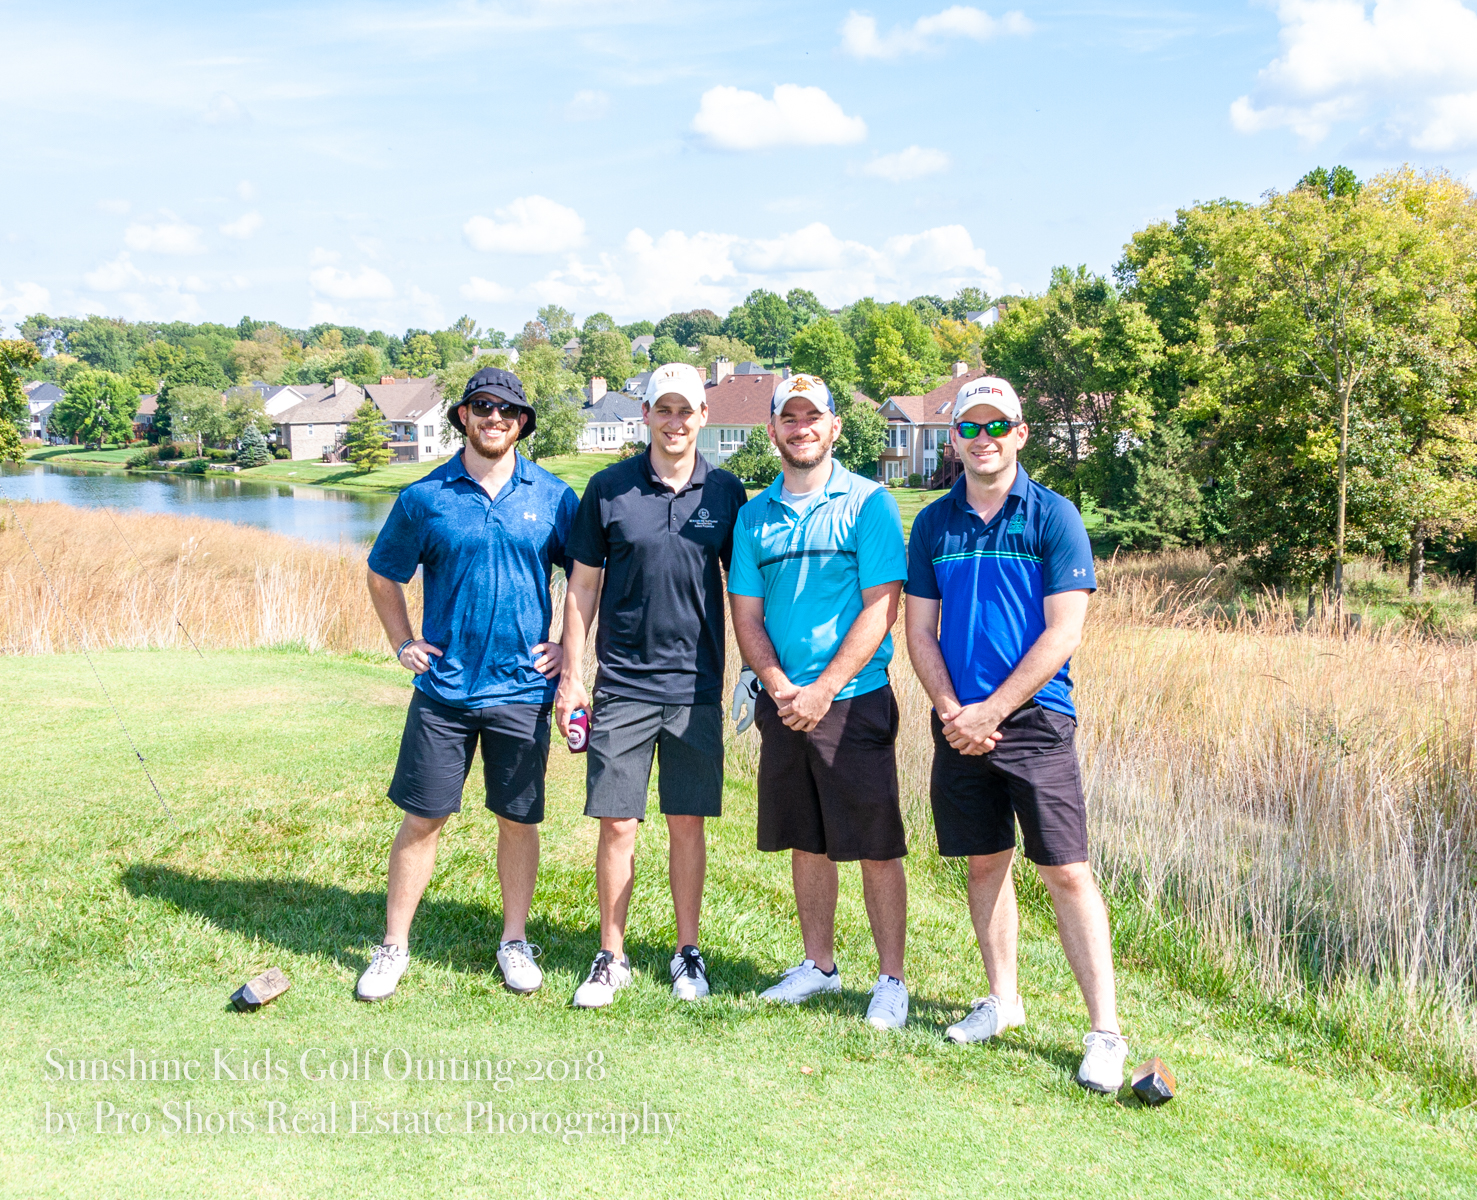 SSK Golf Player Photos-8.jpg